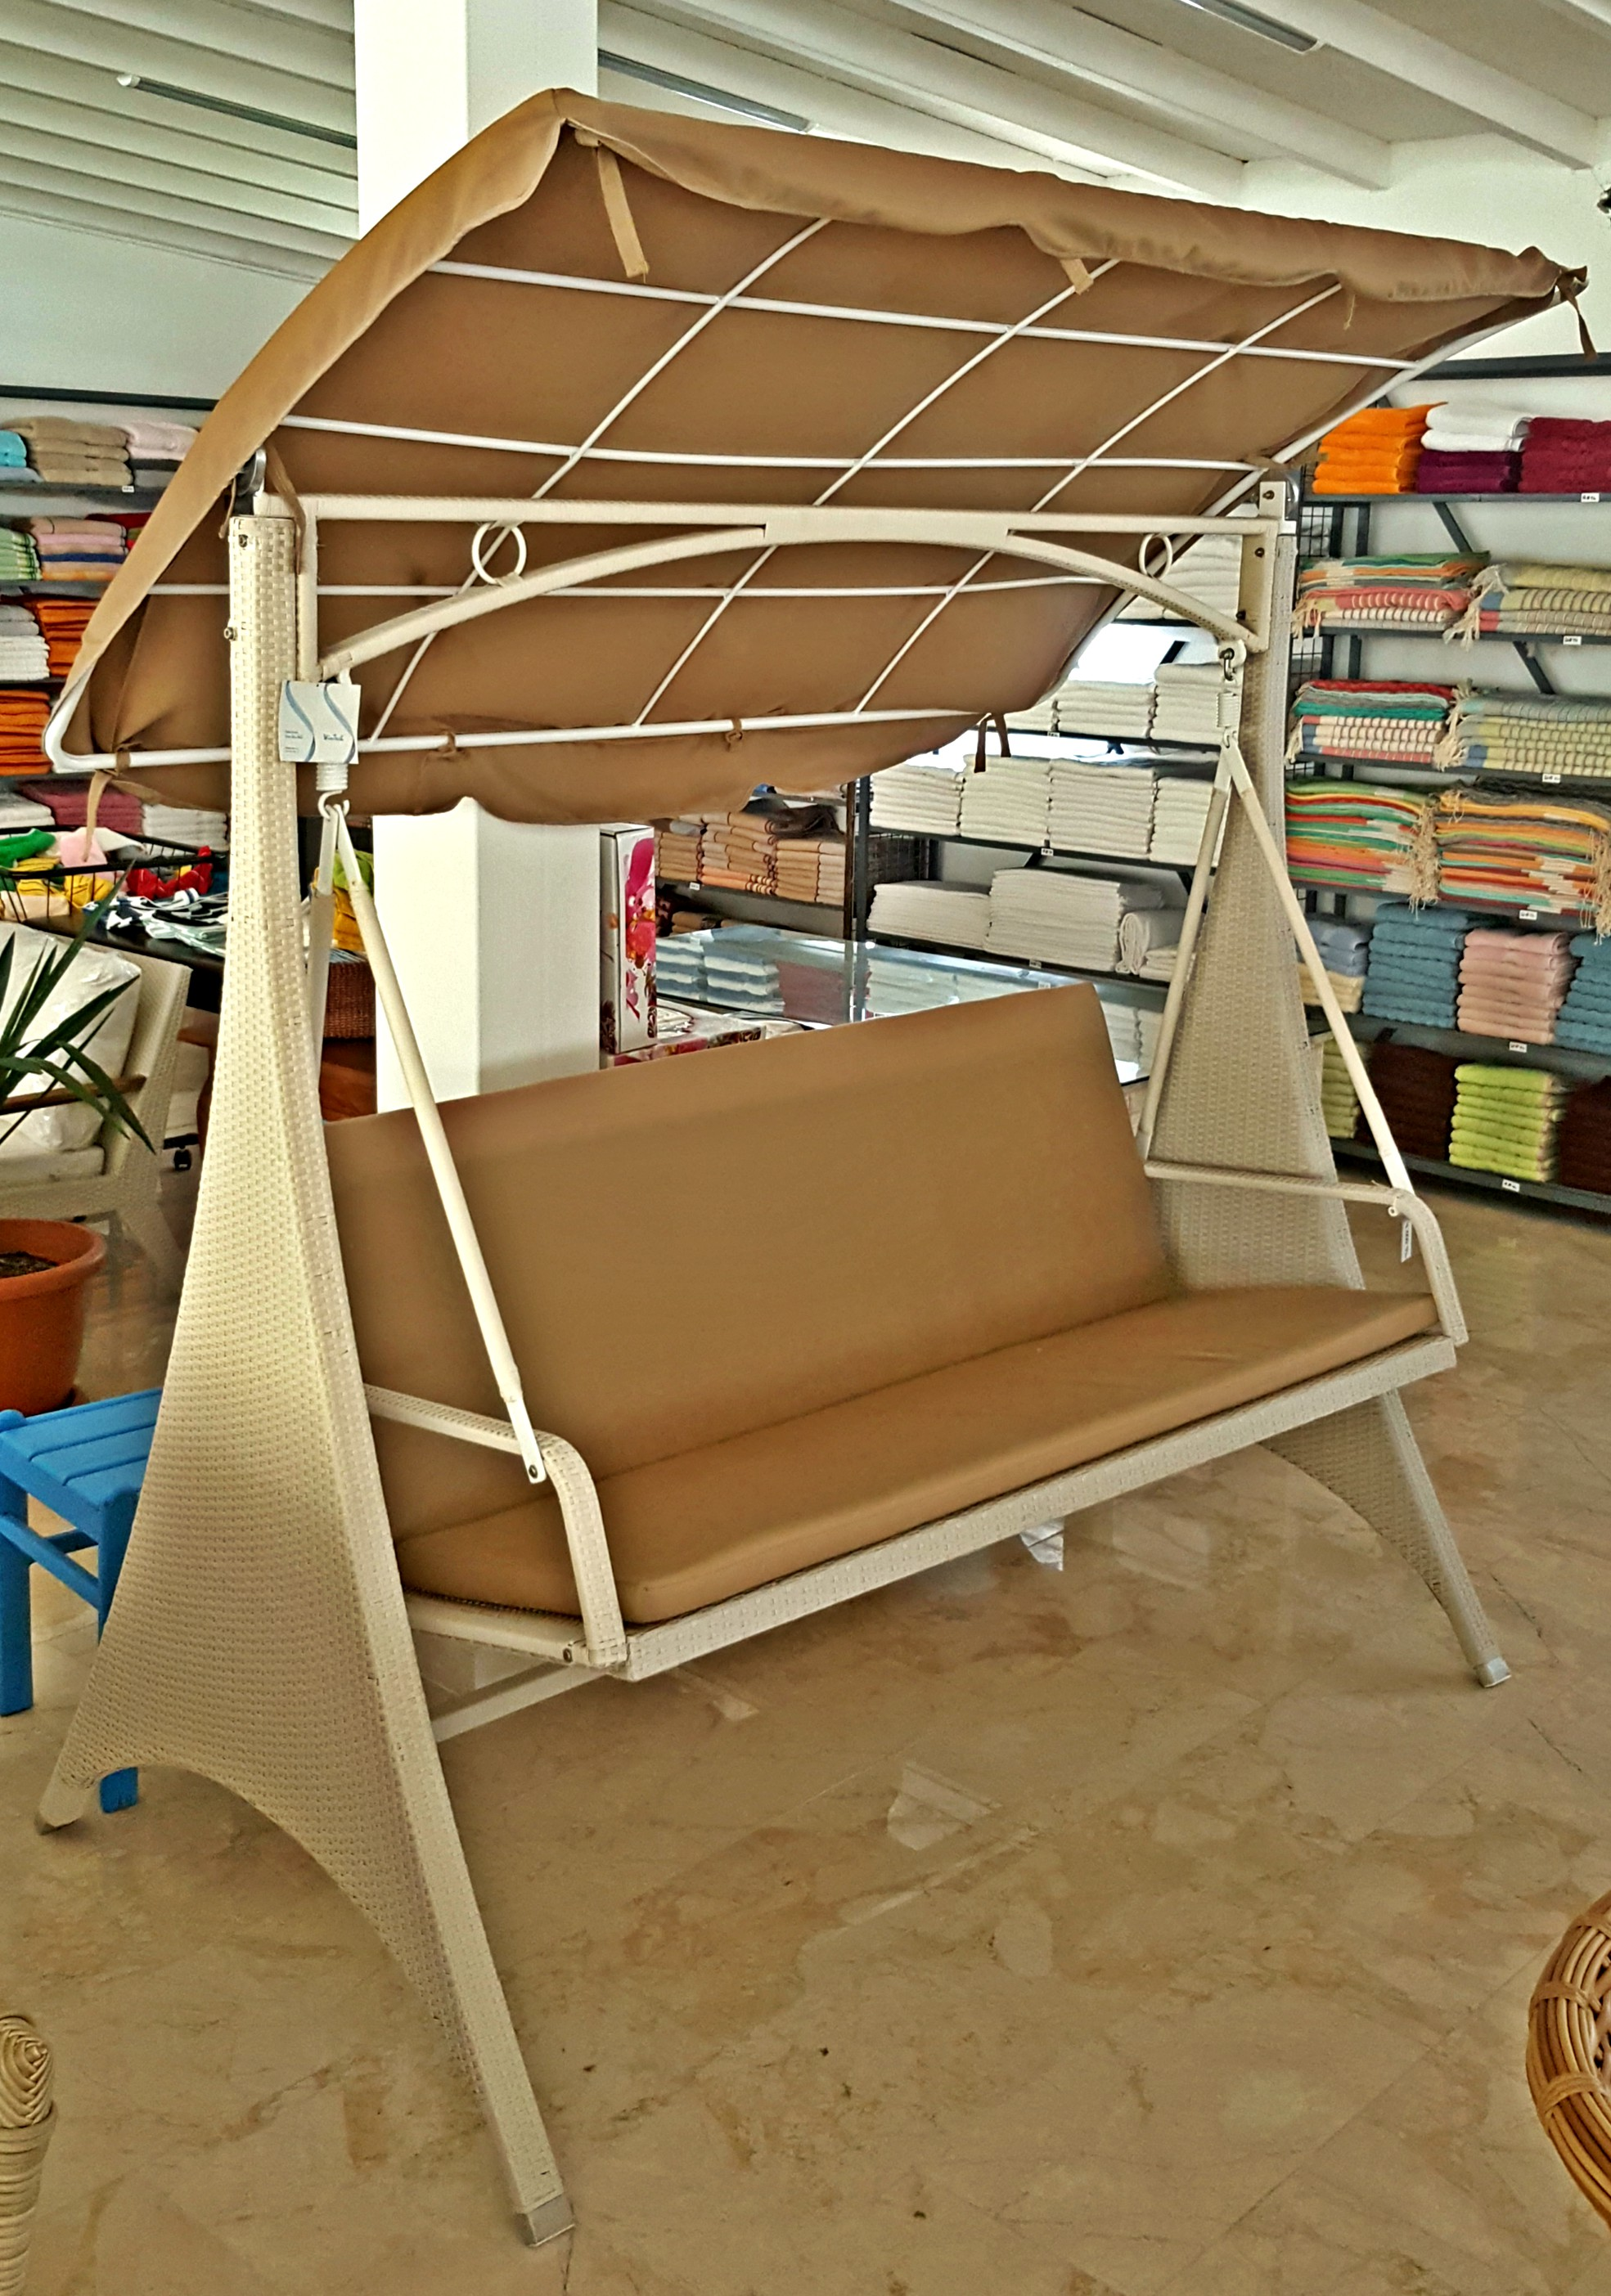 Lunica 2-Seater Swing